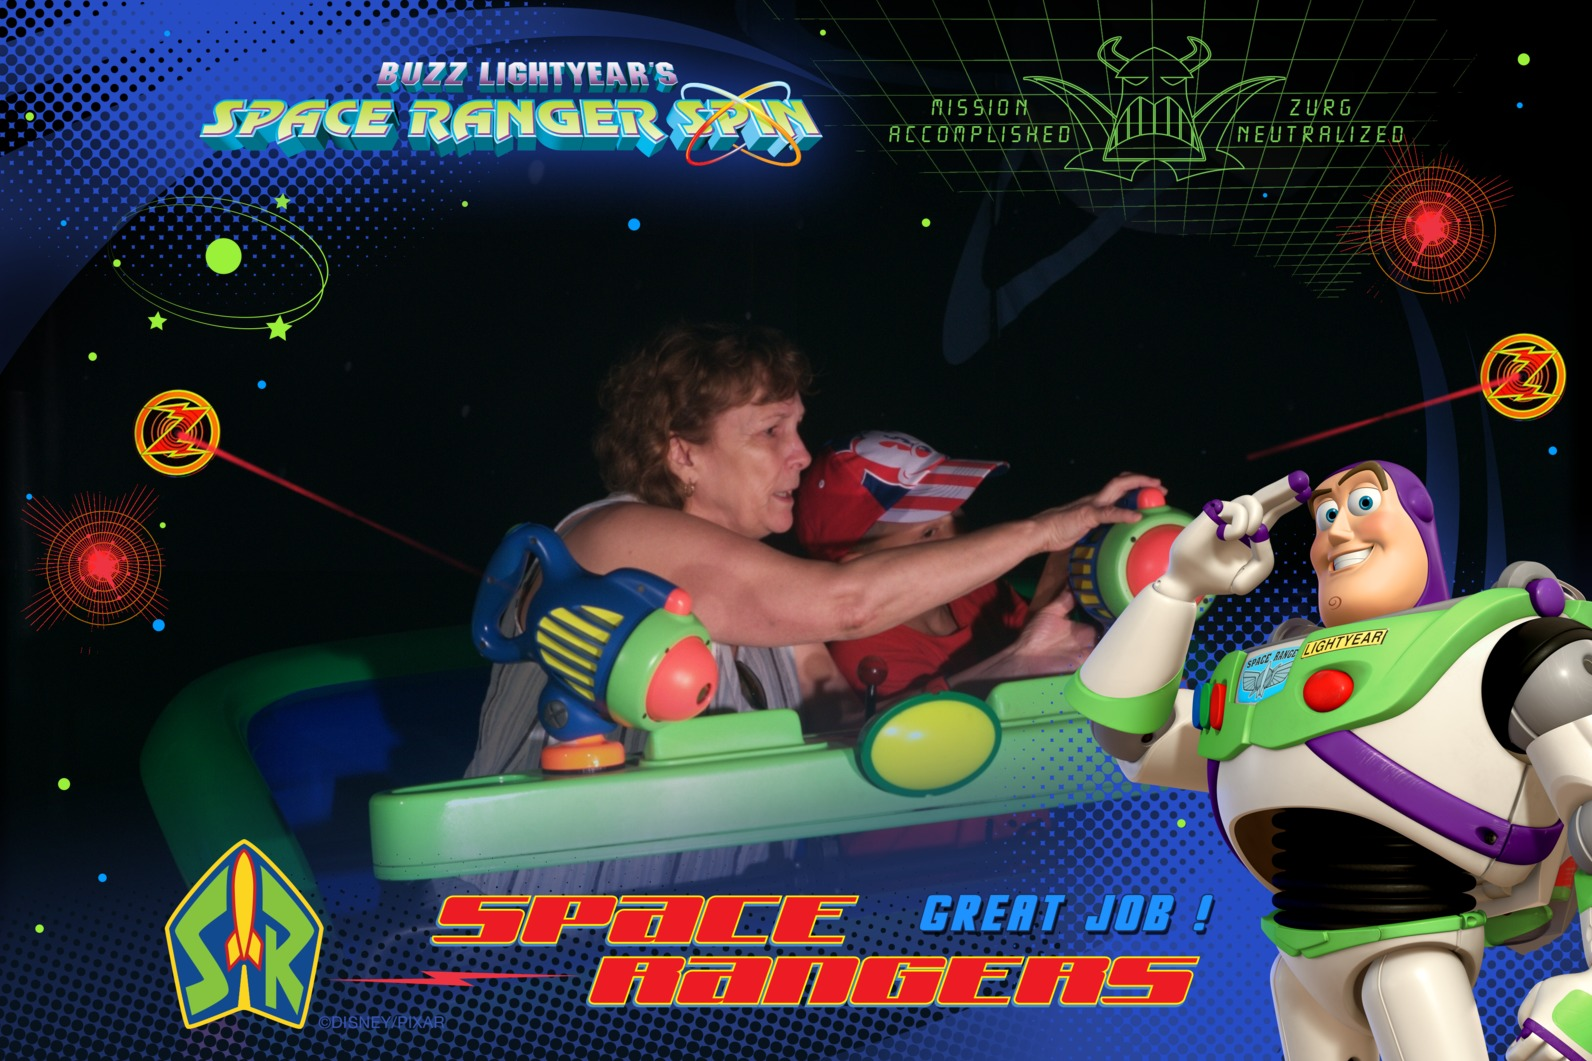 Three things I learned-Don't ride Buzz Lightyear with mom